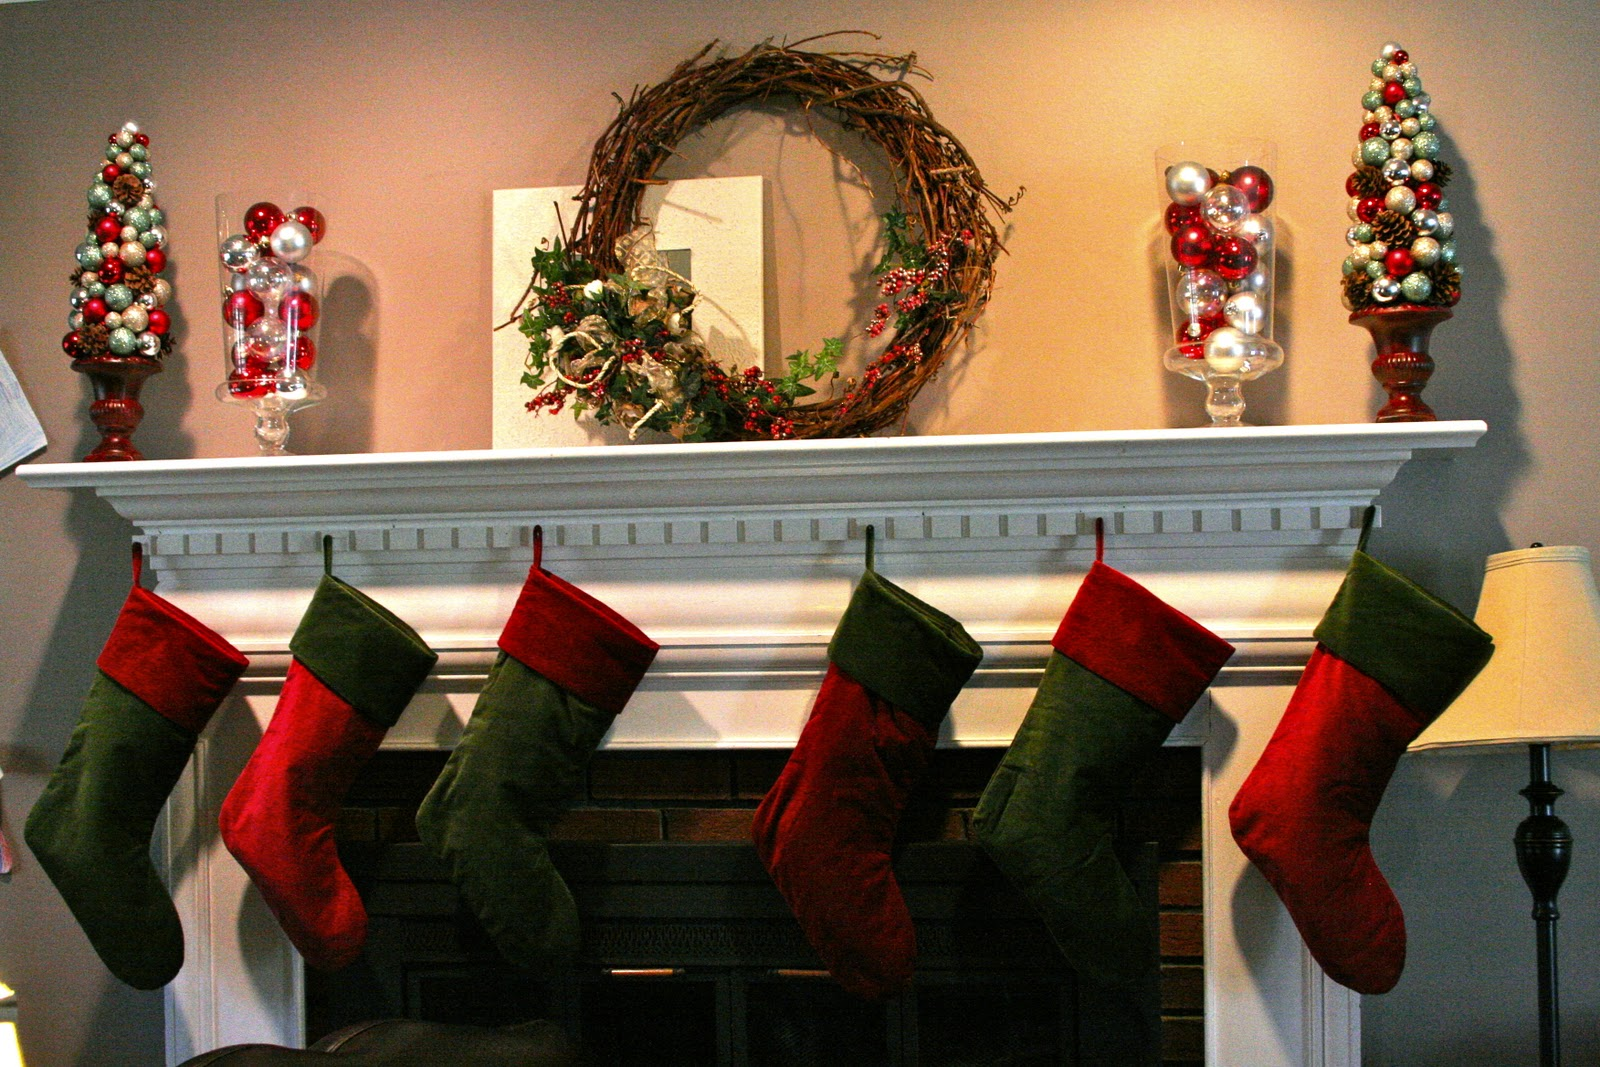 Chimney Christmas Decorations grass stains: the stockings are hungthe chimney with care